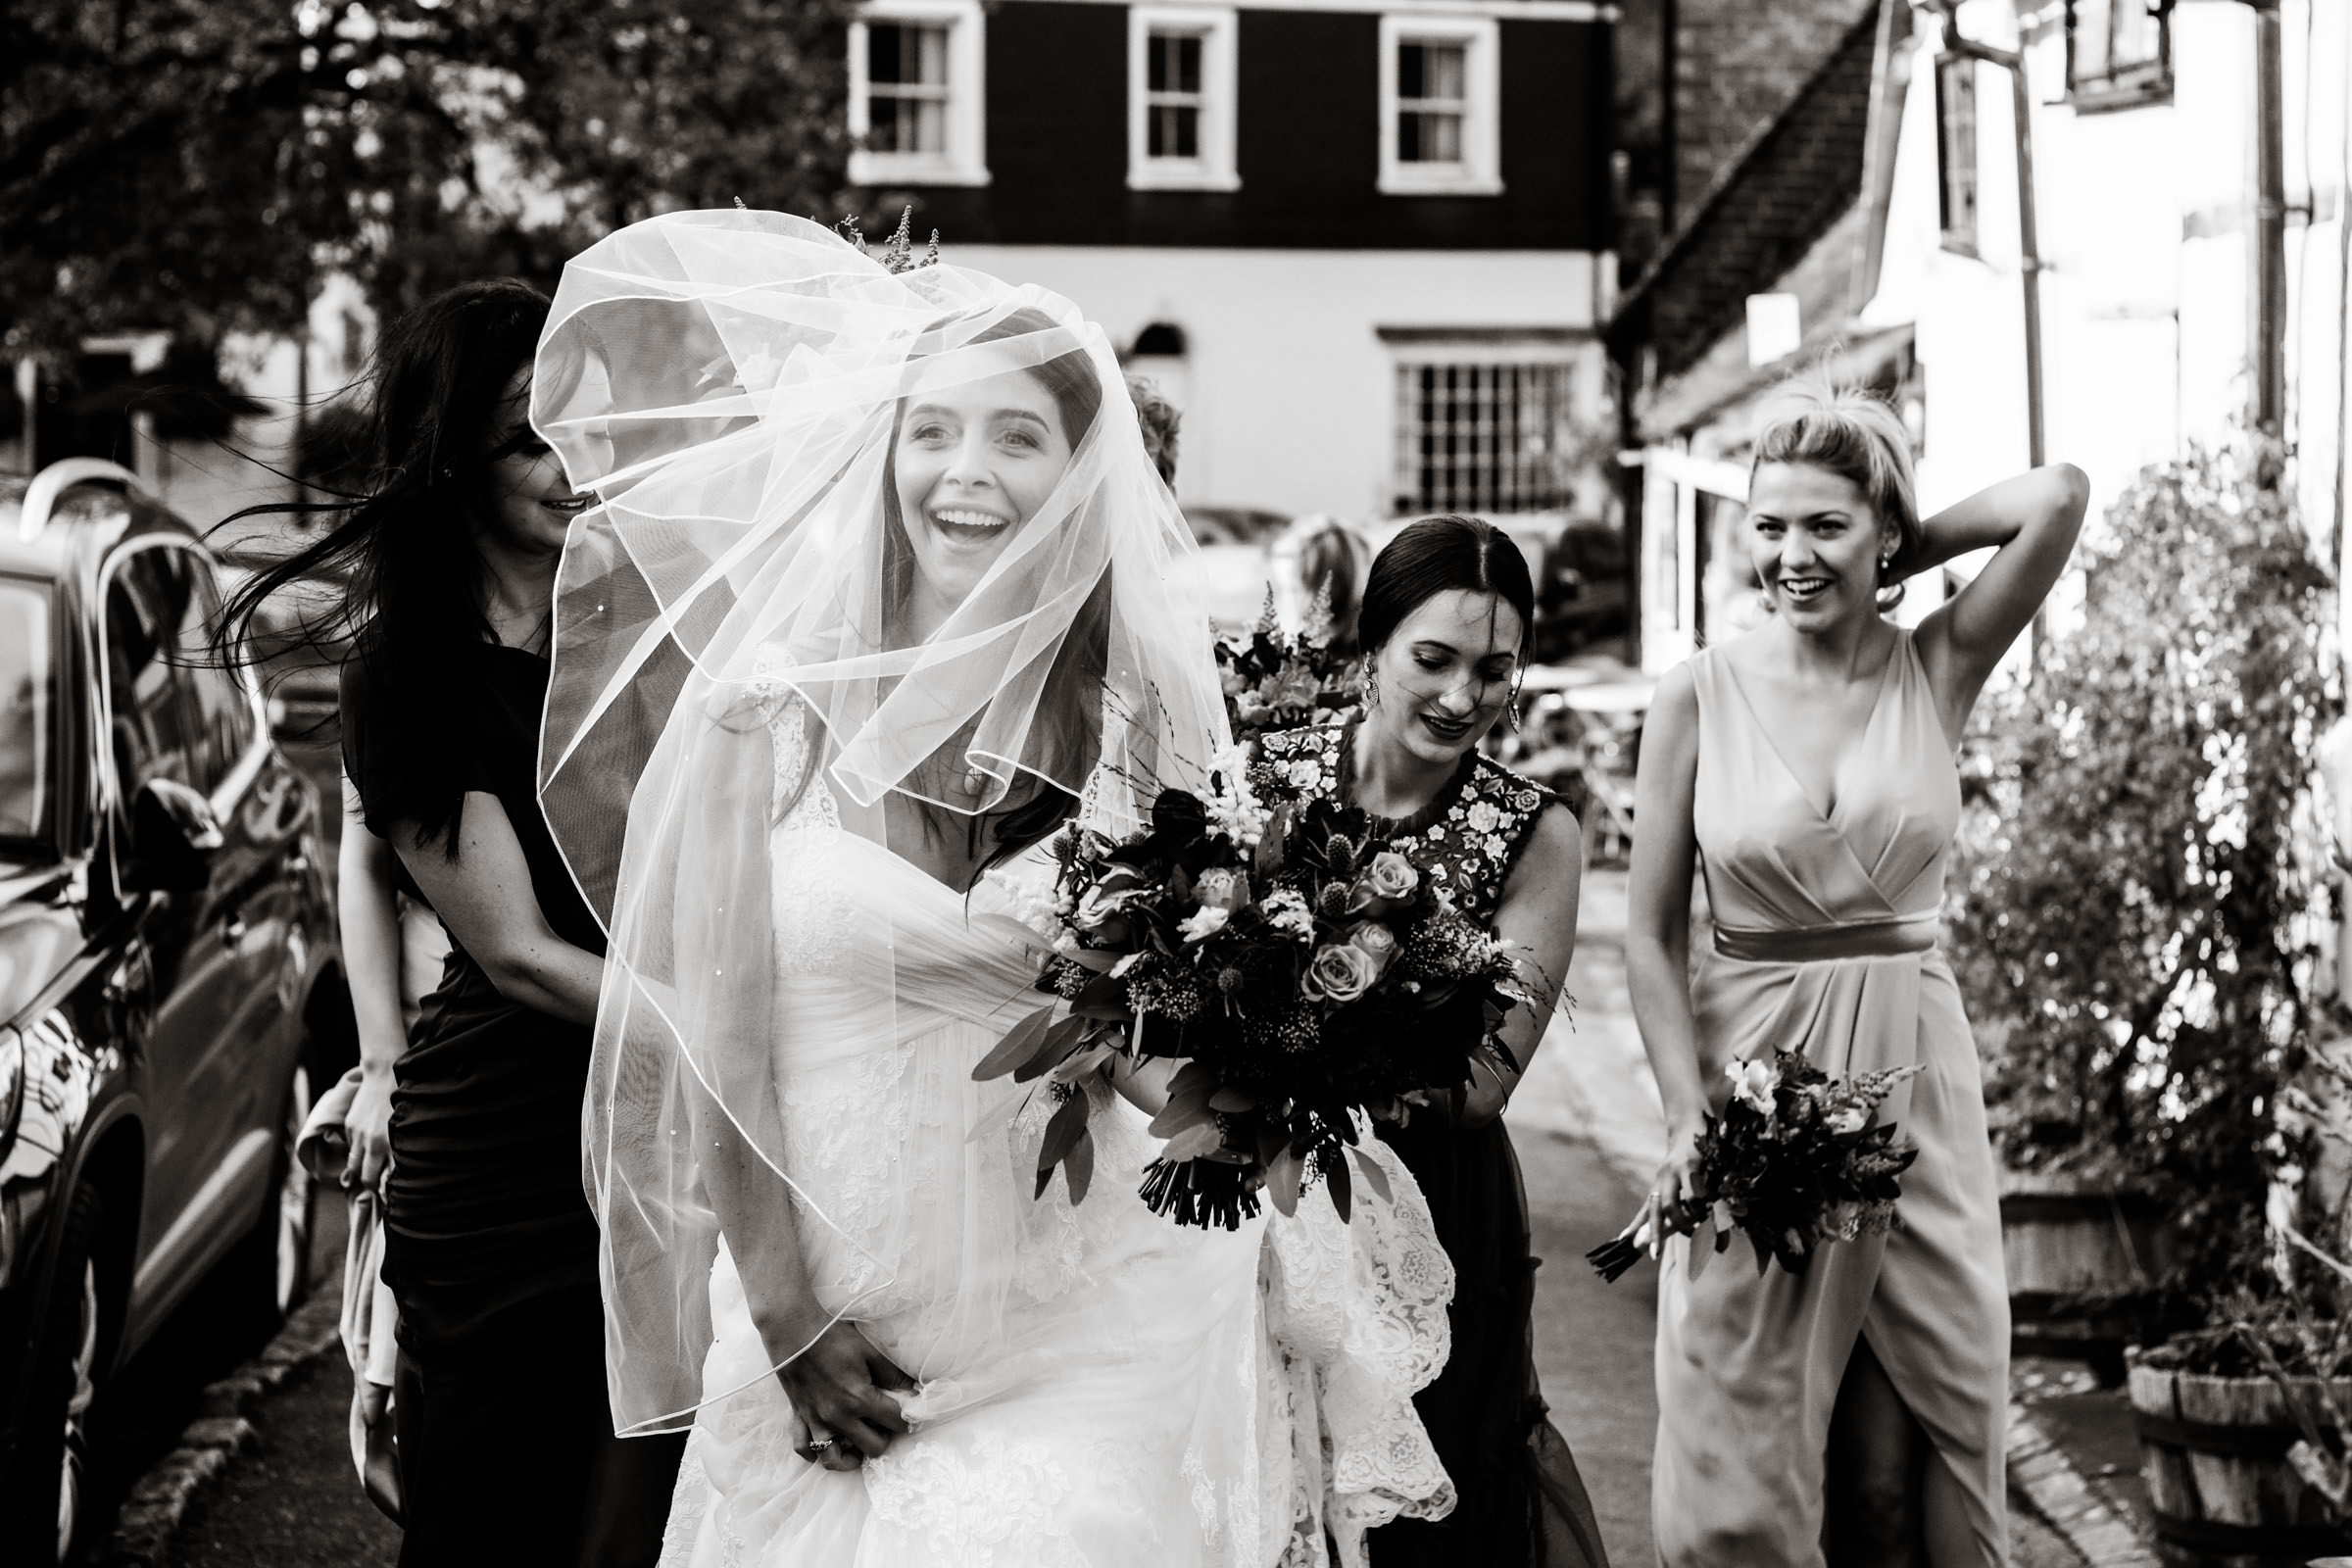 Talbot+Inn+Wedding+Photos+Surrey+007.jpg